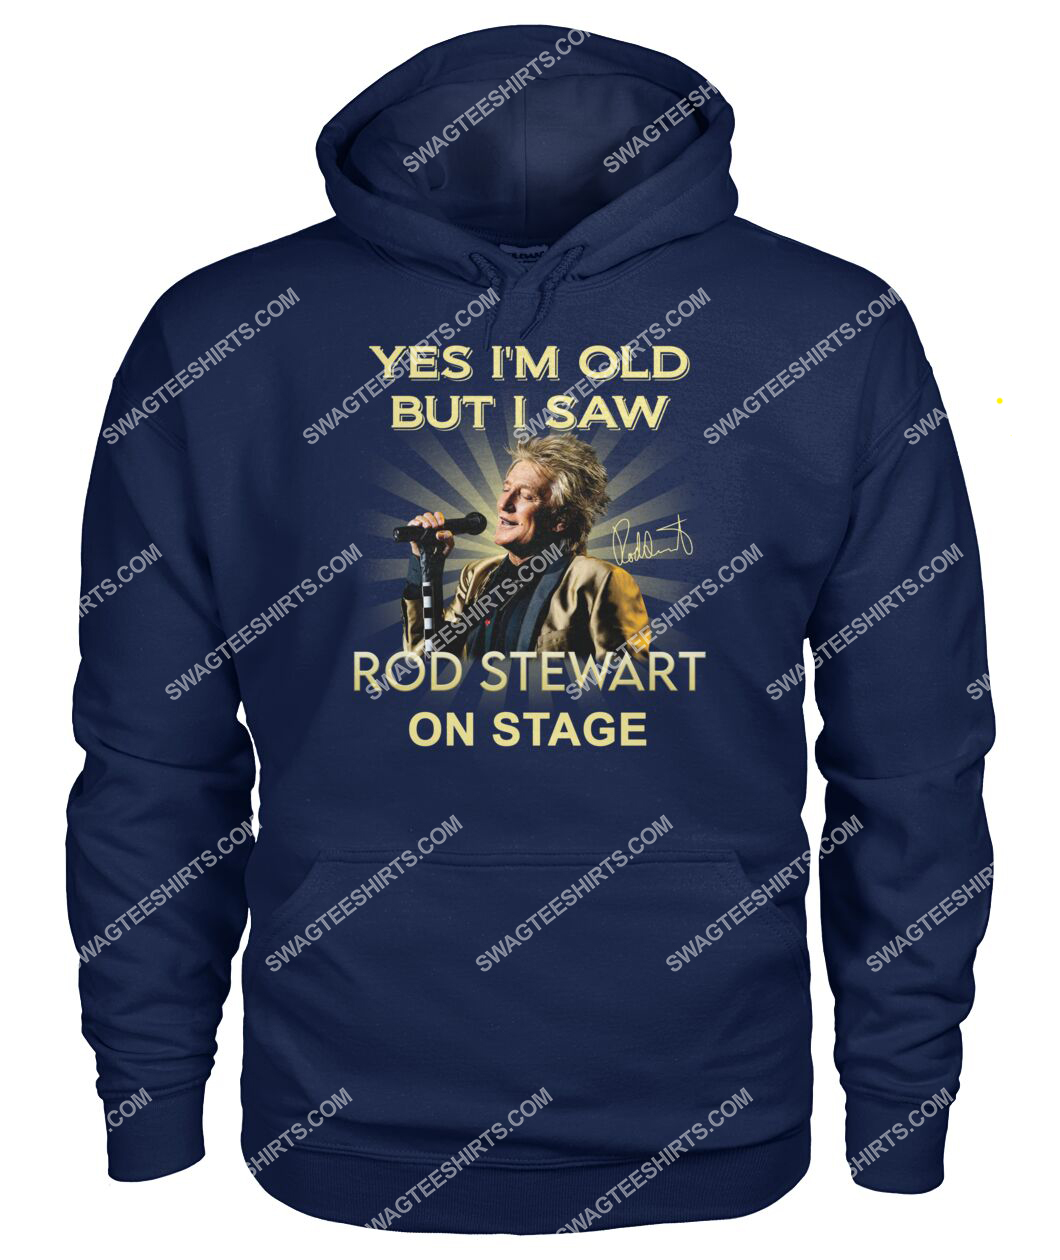 yes i am old but i saw rob stewart on stage vintage hoodie 1